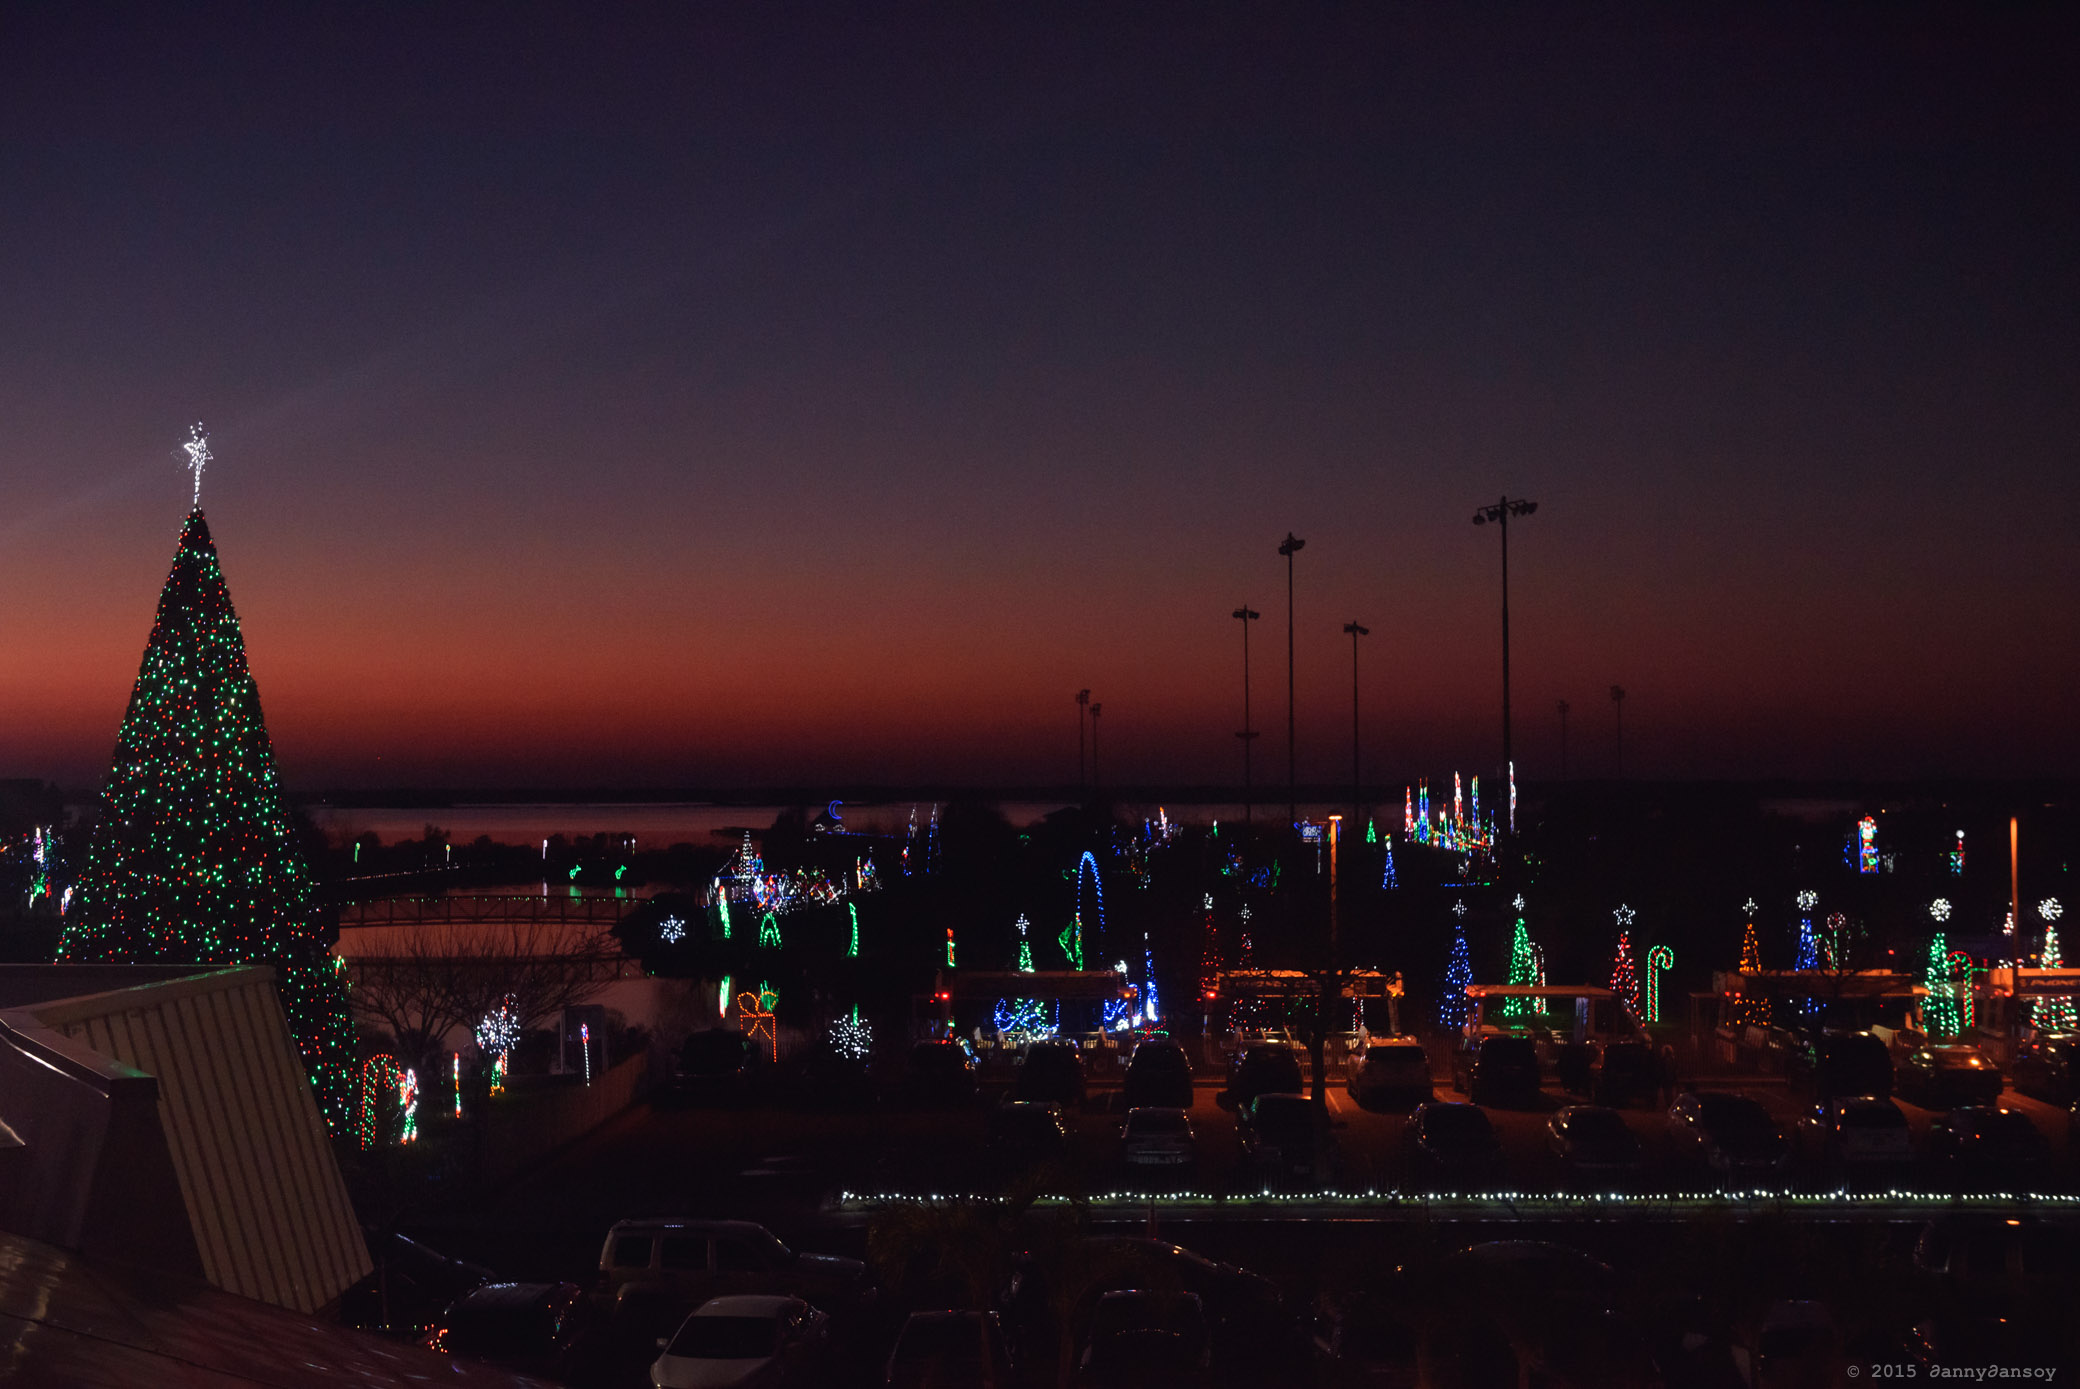 Ocean City, MD - A bayside view over looking the annual Winterfest of Lights display at Northside Park shortly after the sun dipped below the horizon. Flickr - Dan G.